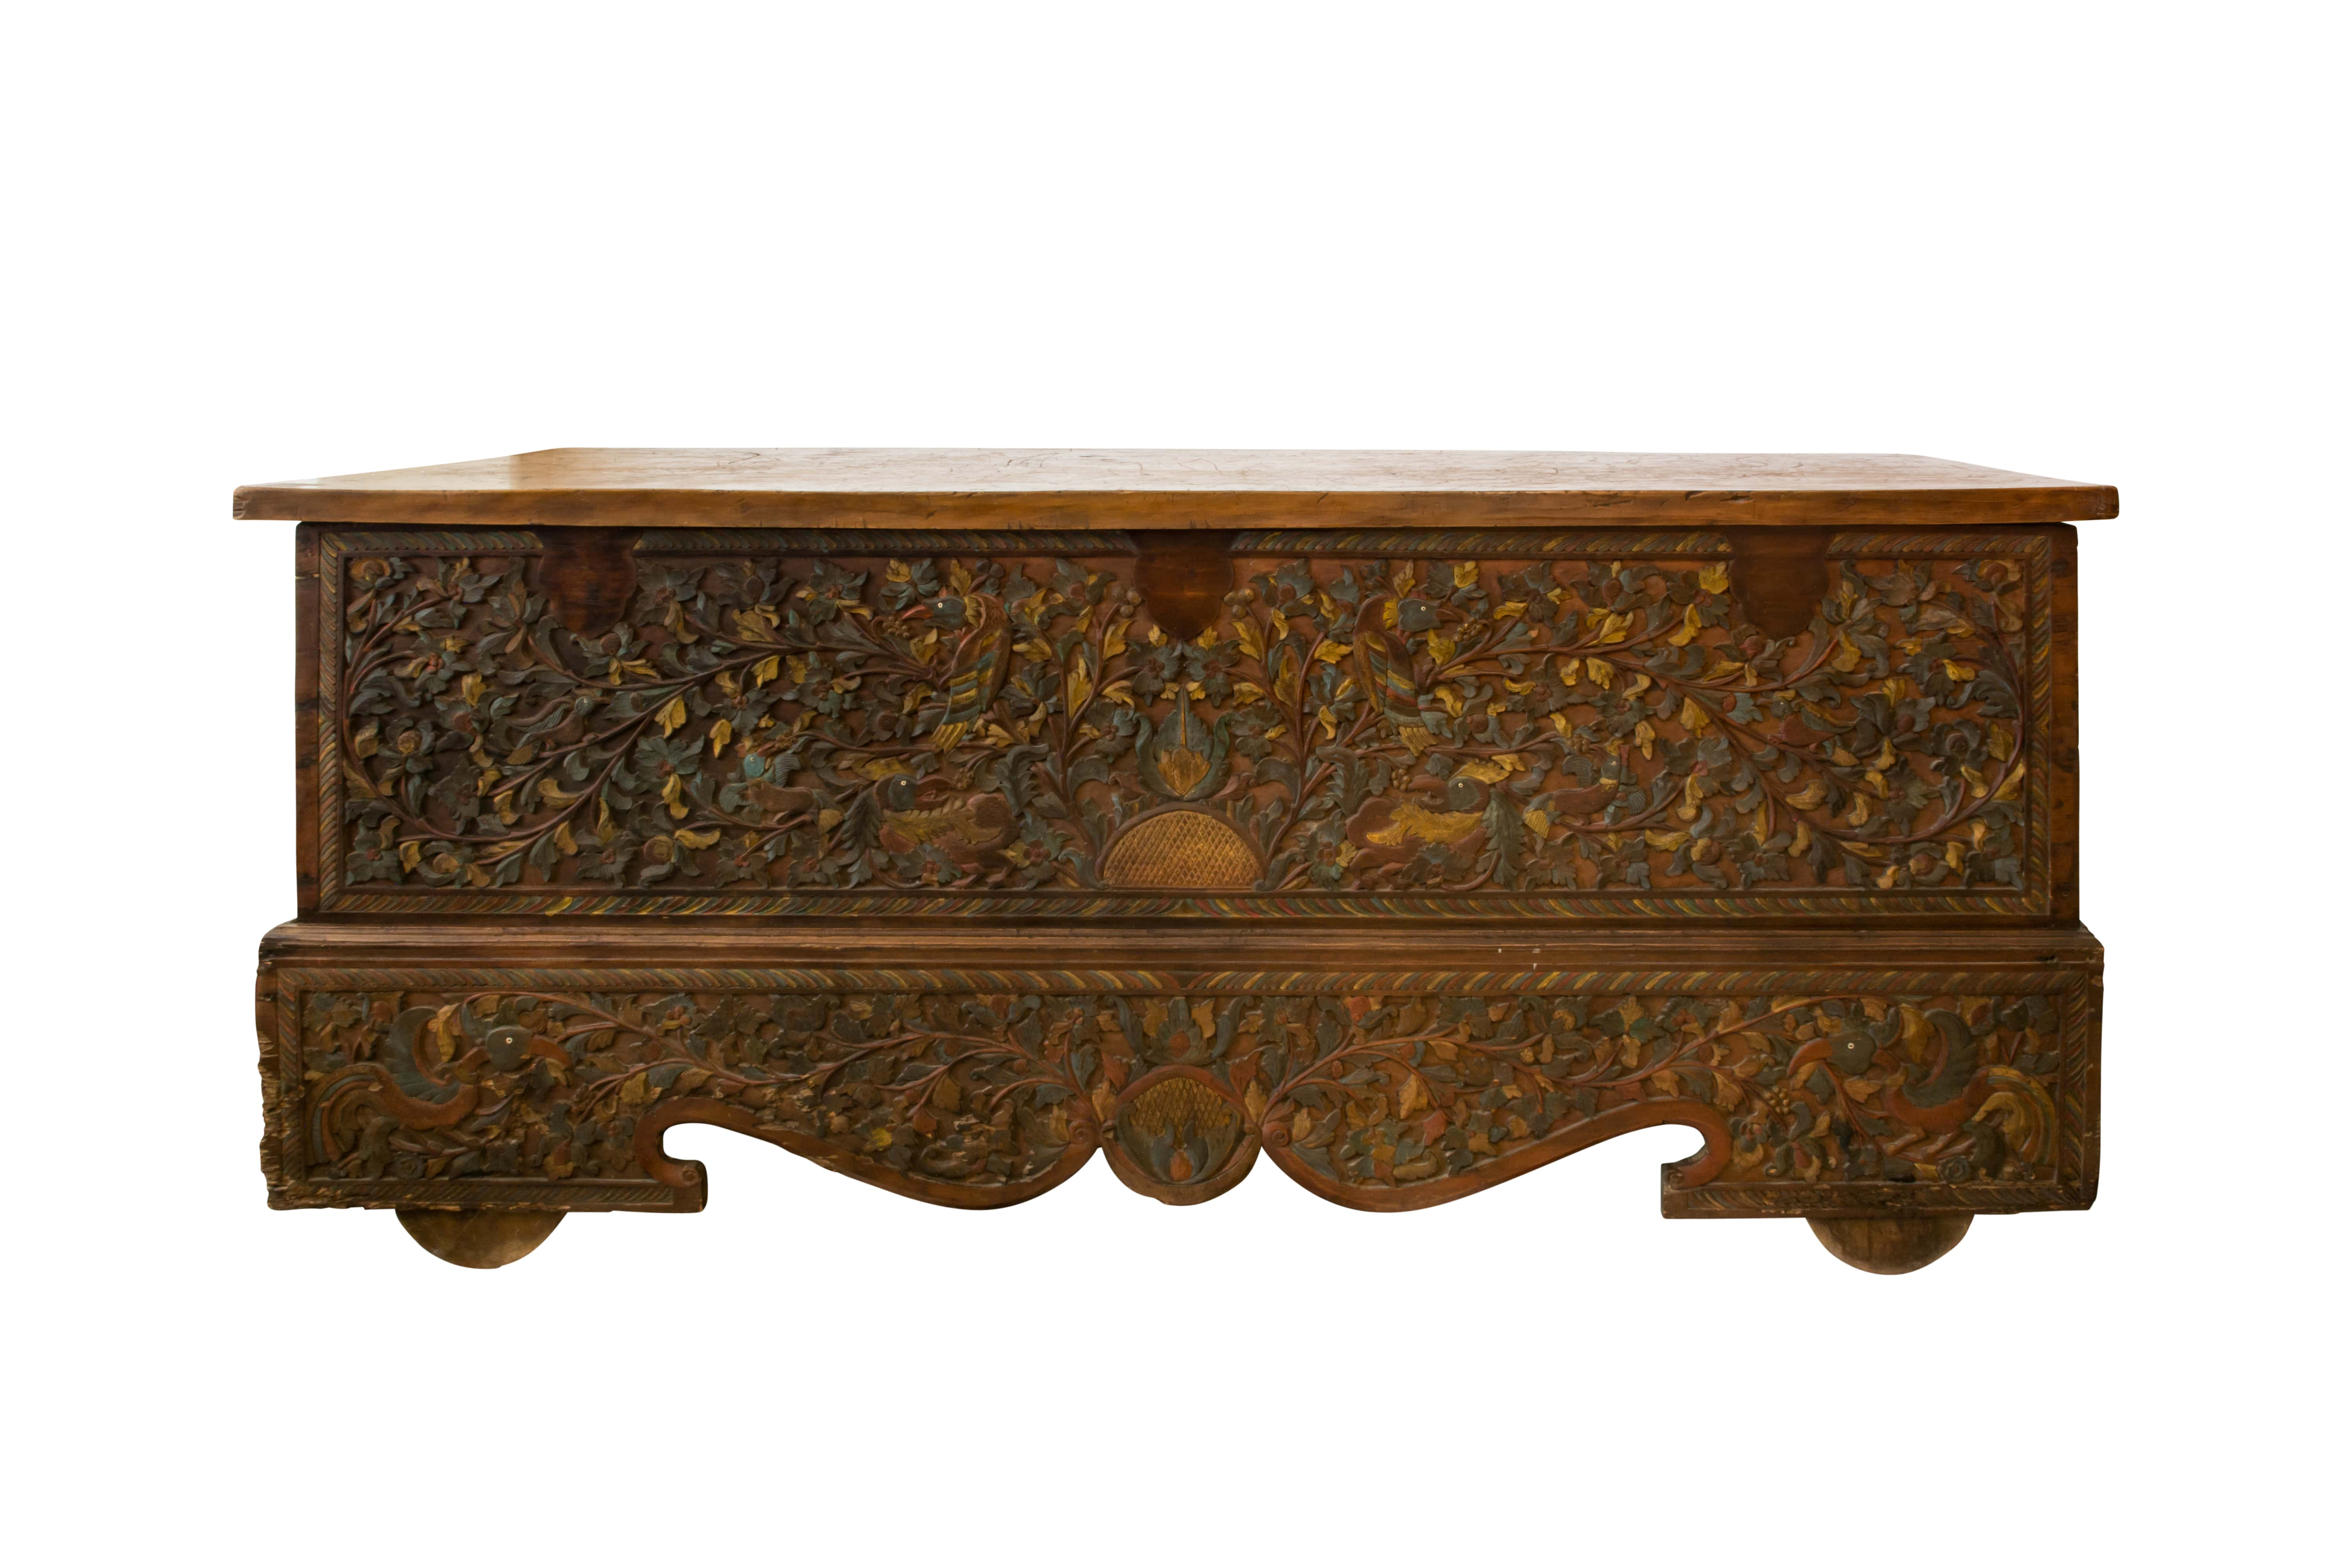 Wooden trunk with floral design